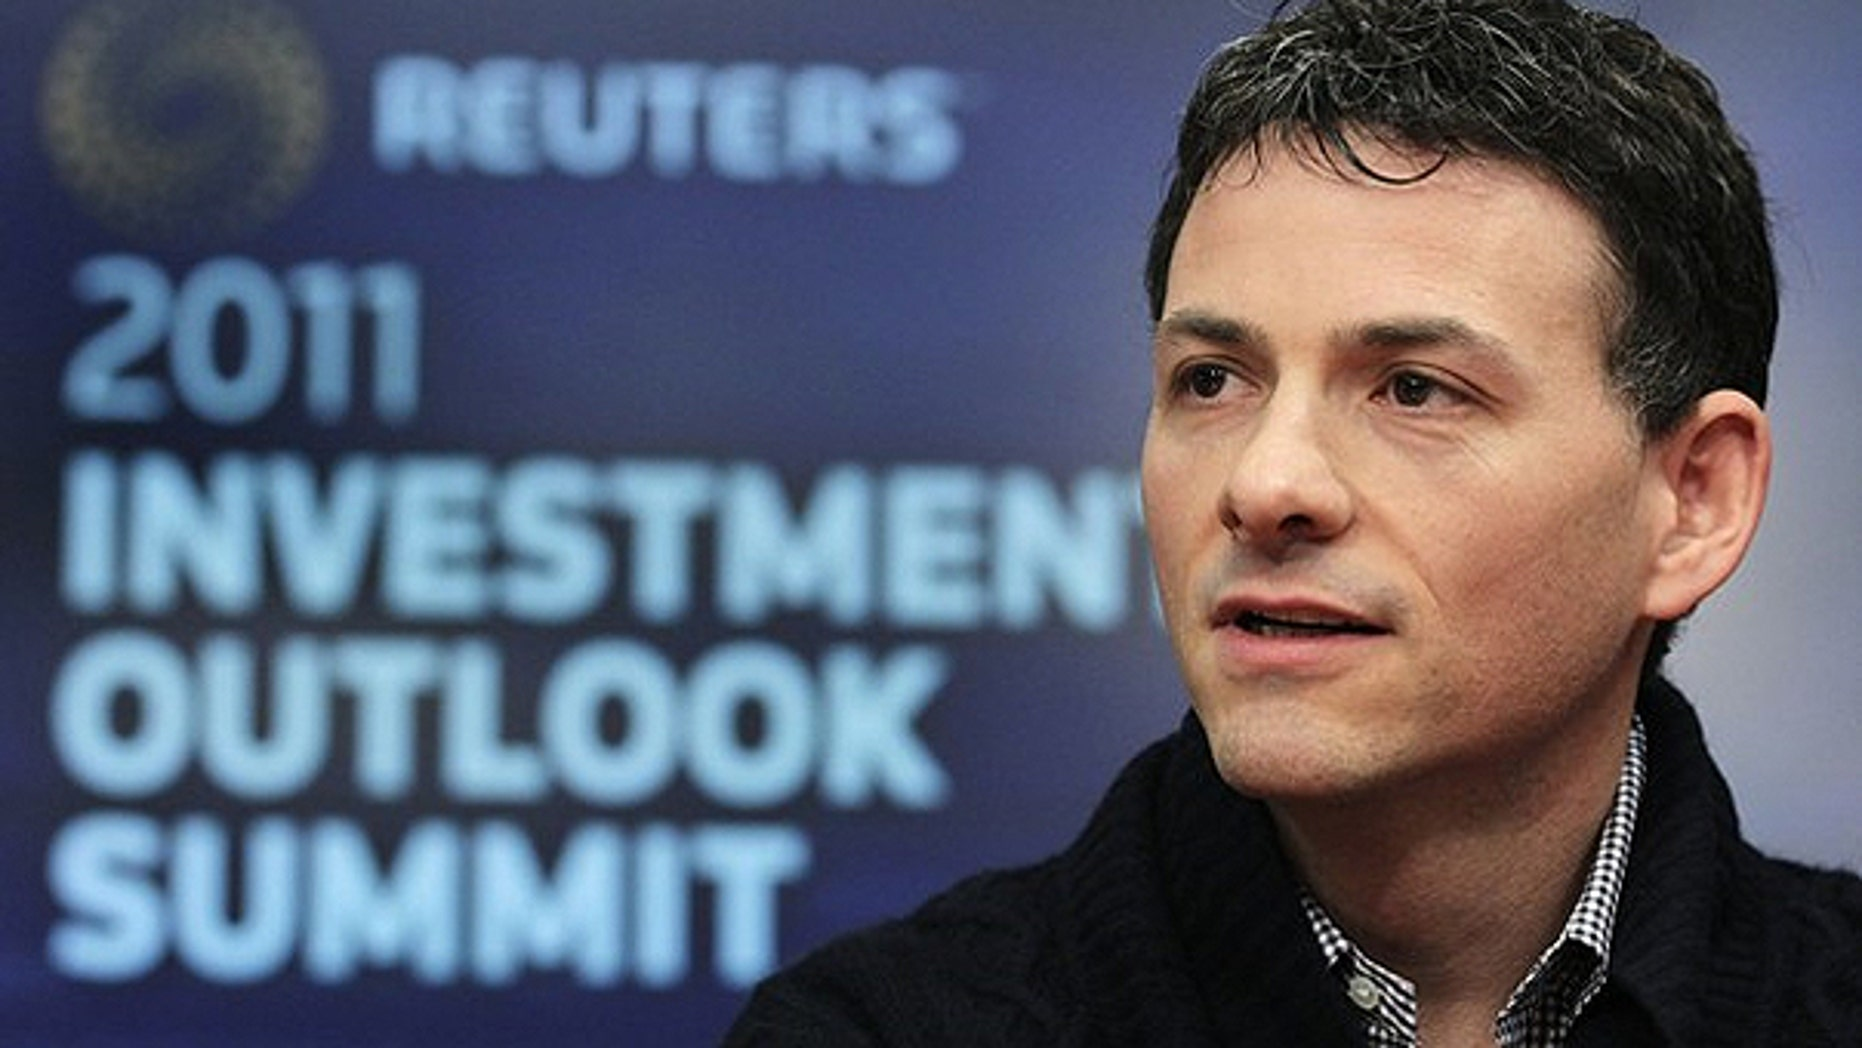 Dec. 7, 2010: David Einhorn, President of Greenlight Capital, speaks at the Reuters Investment Outlook Summit in New York.